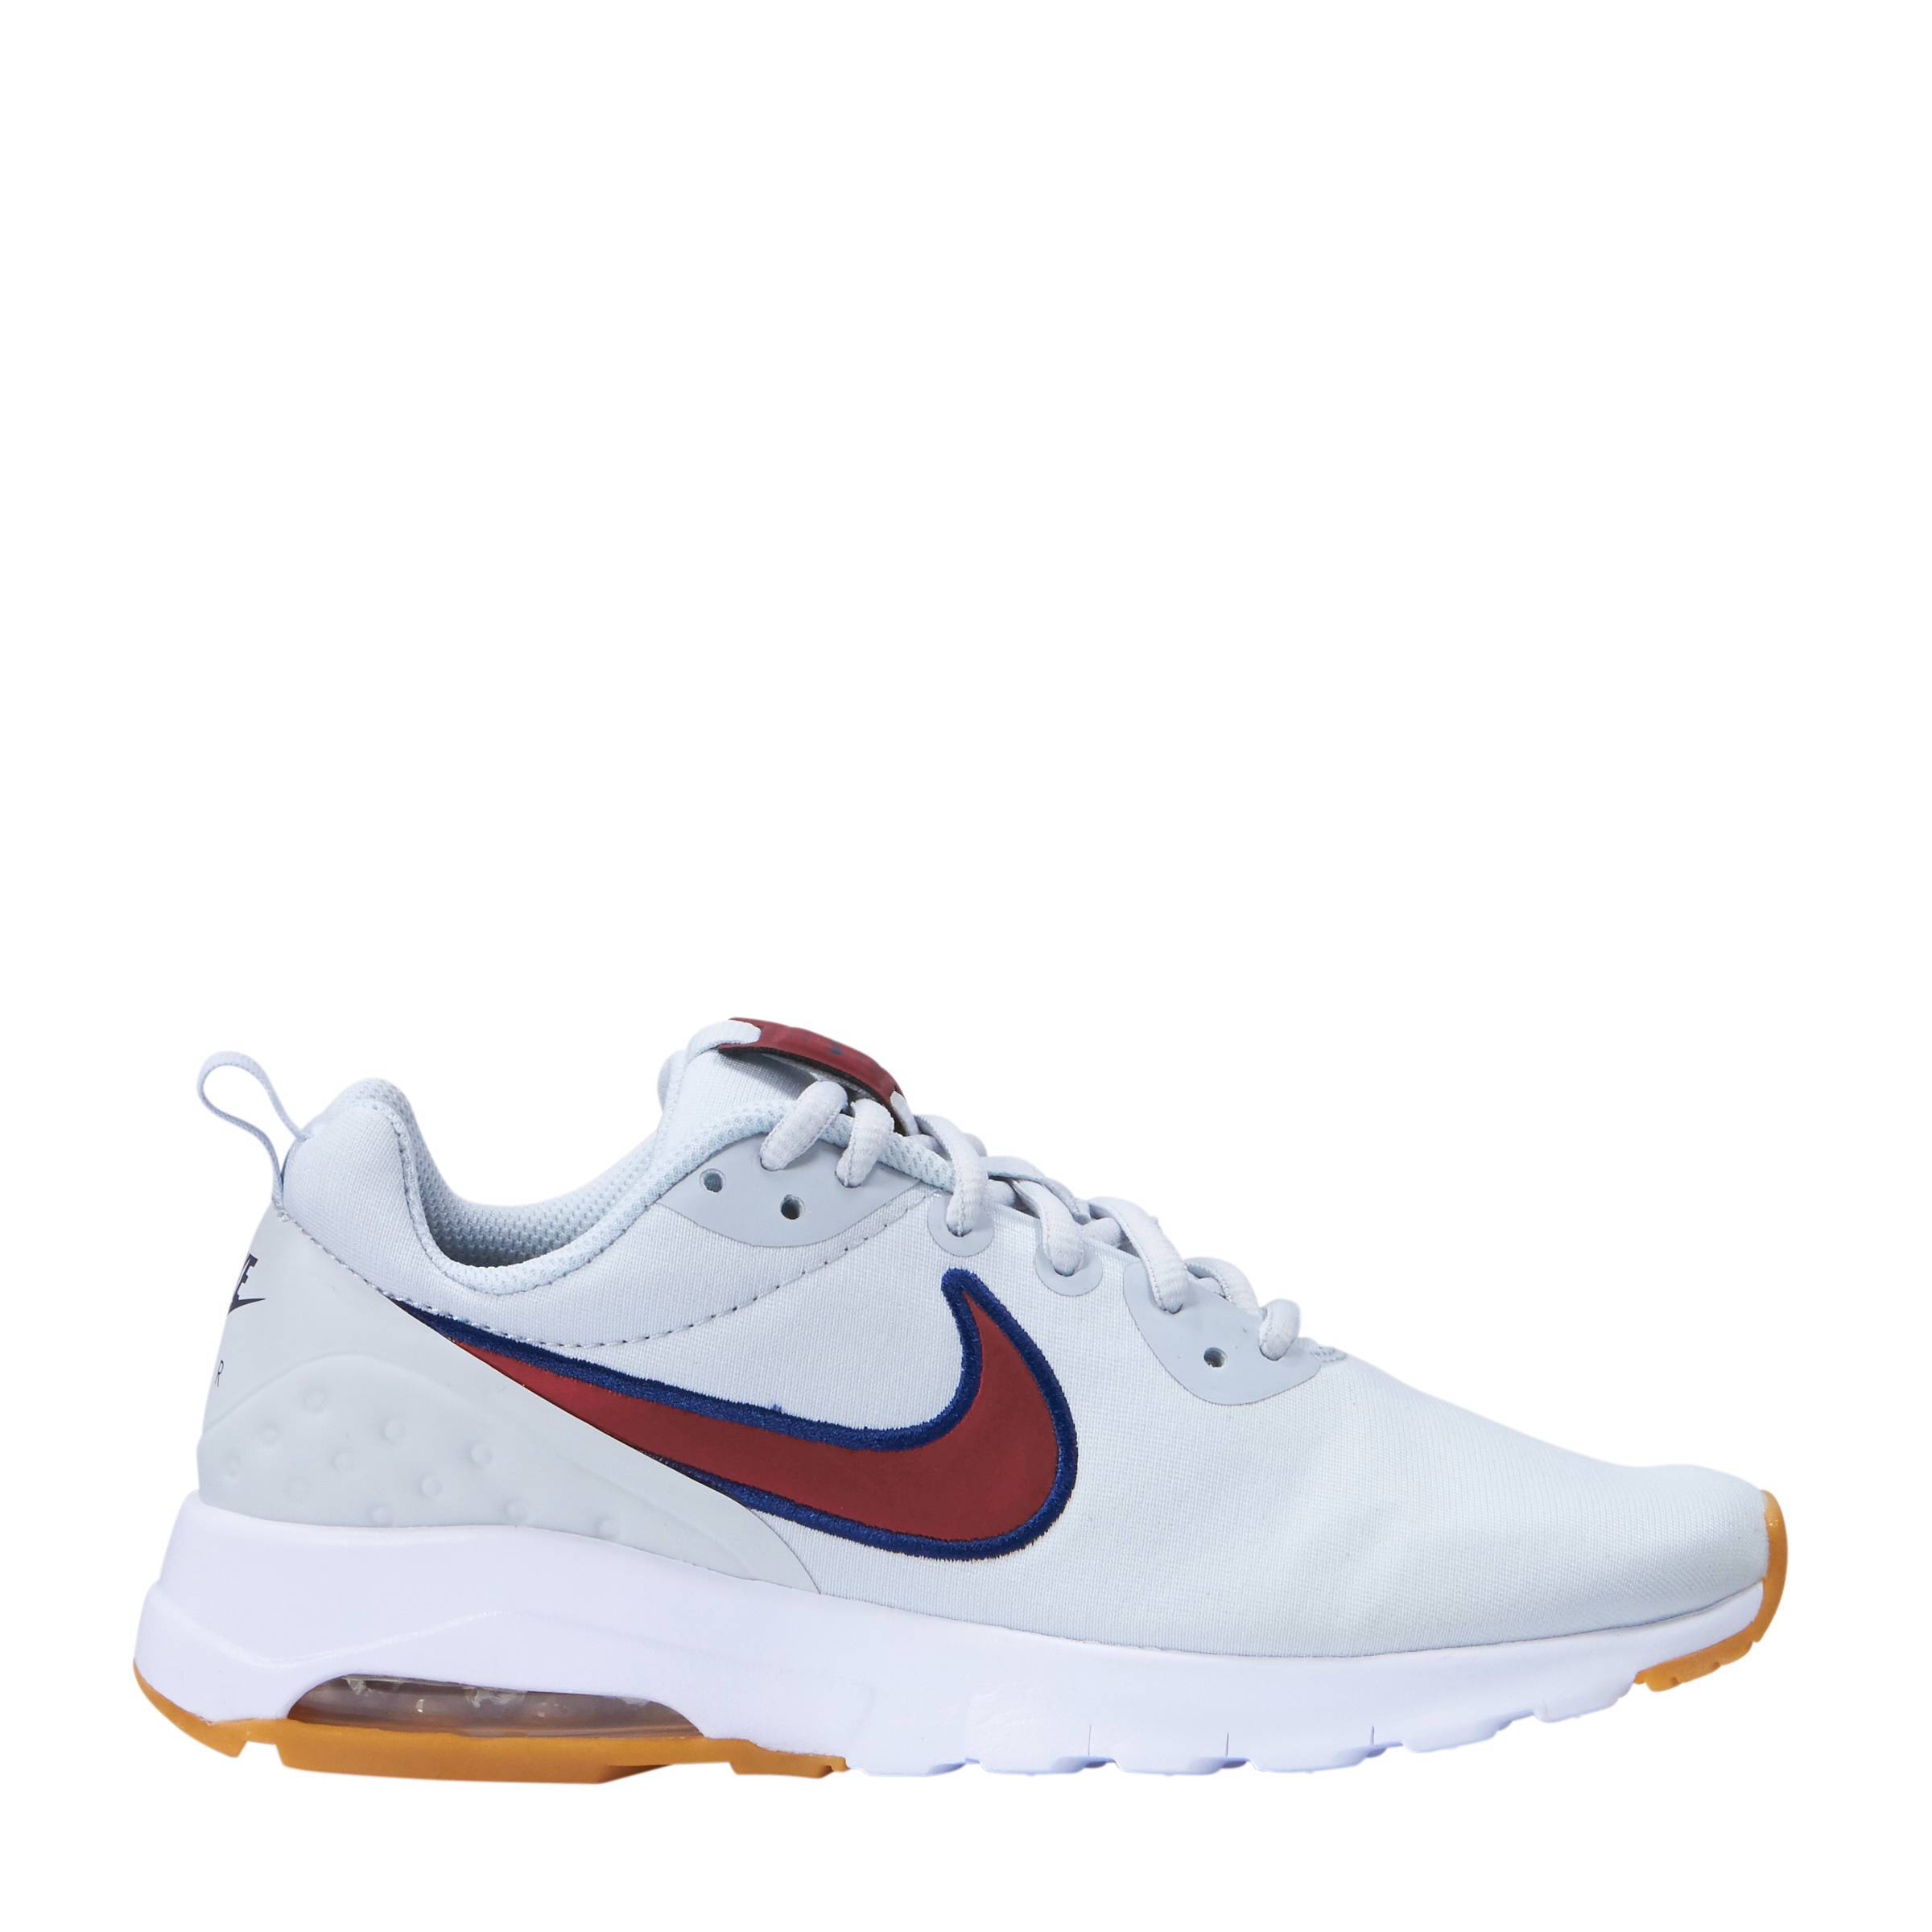 huge discount 2a314 91fc0 ... real sneakers nike motion wehkamp air se lw max arwreqx 798f4 40c32